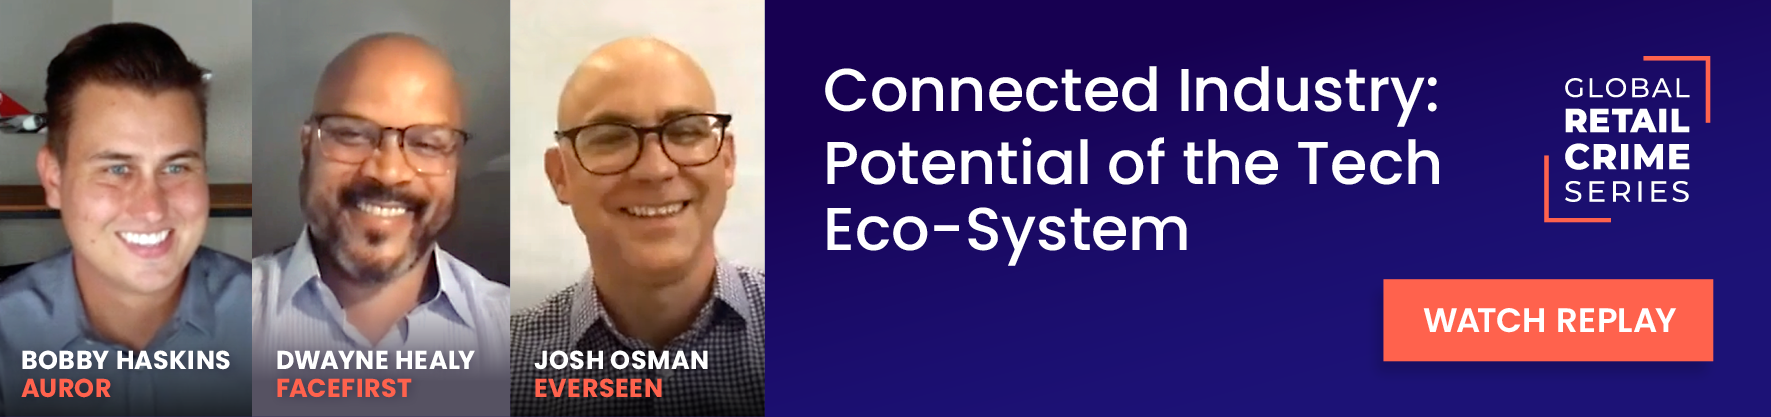 Connected Industry: Potential of the Tech Eco-System